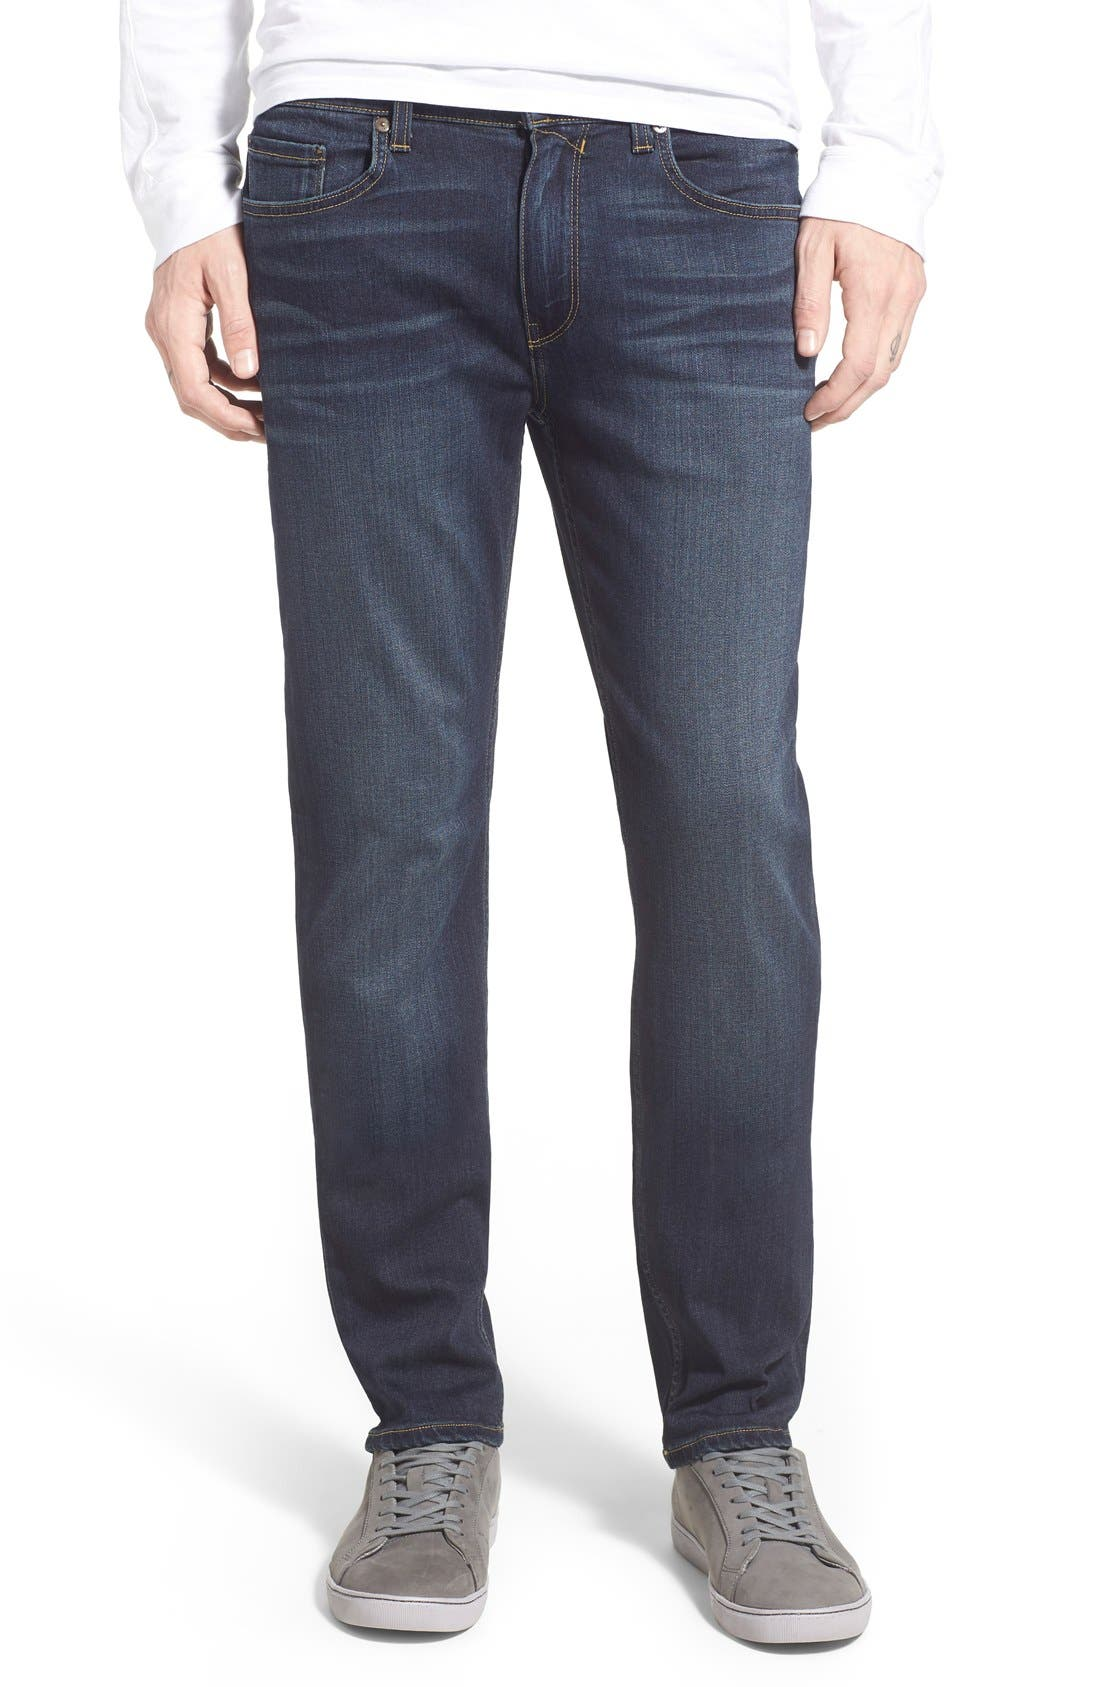 Alternate Image 1 Selected - PAIGE Lennox Slim Fit Jeans (Rigby)